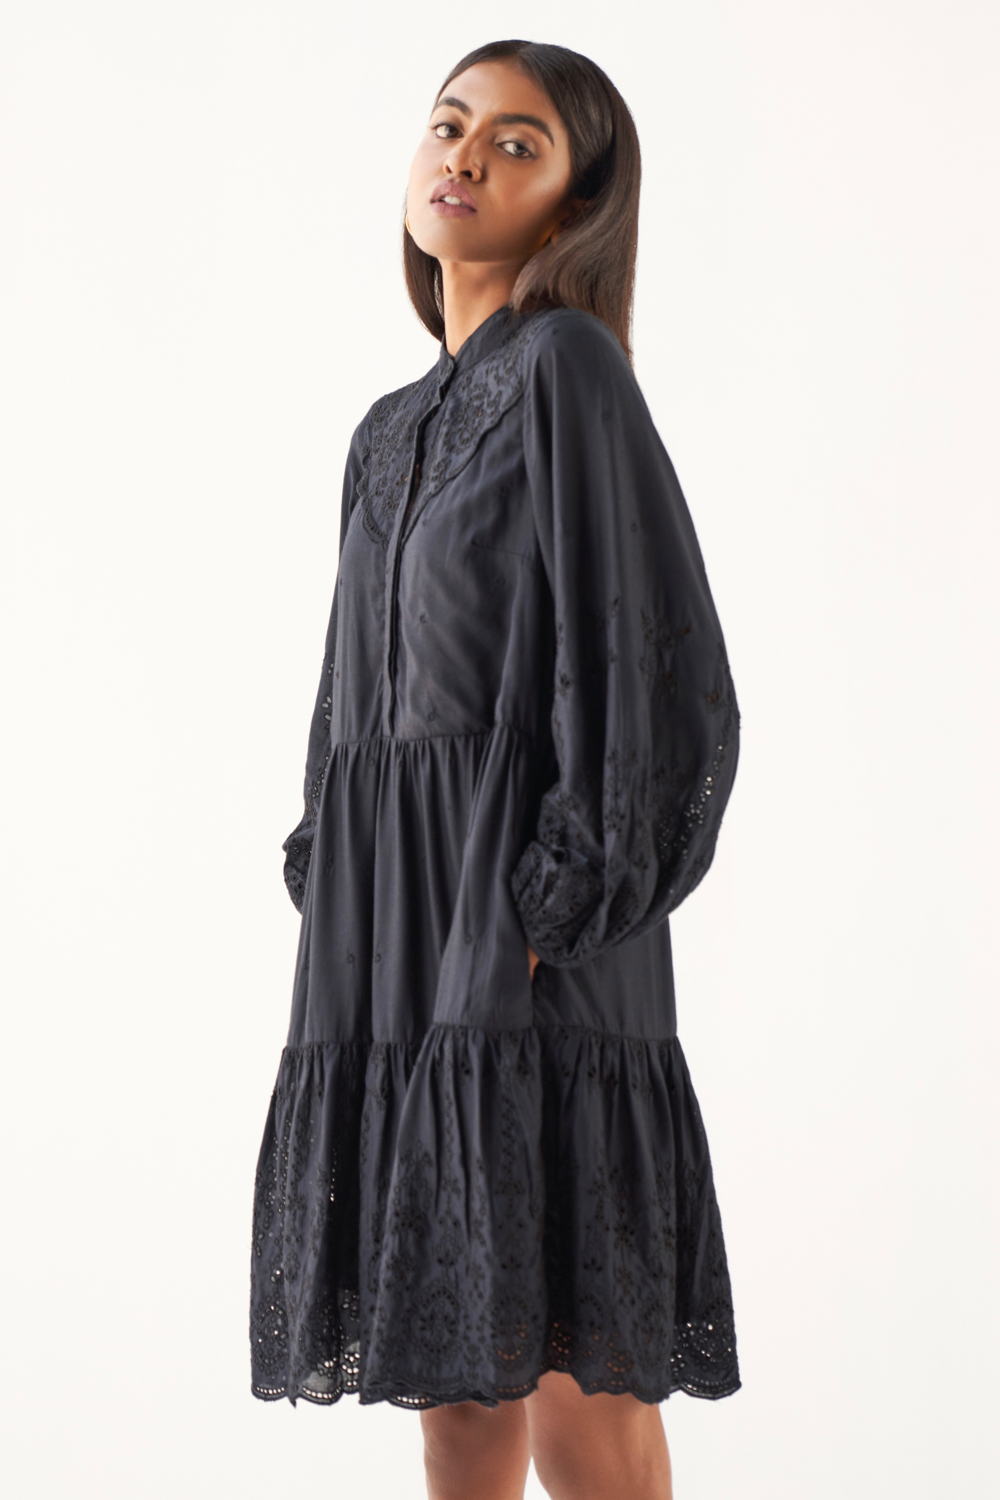 MARRAKESH SOLID BLACK RAYON FABRIC SCHIFFLI EMBROIDERY KNEE LENGTH DRESS WITH FULL SLEEVES